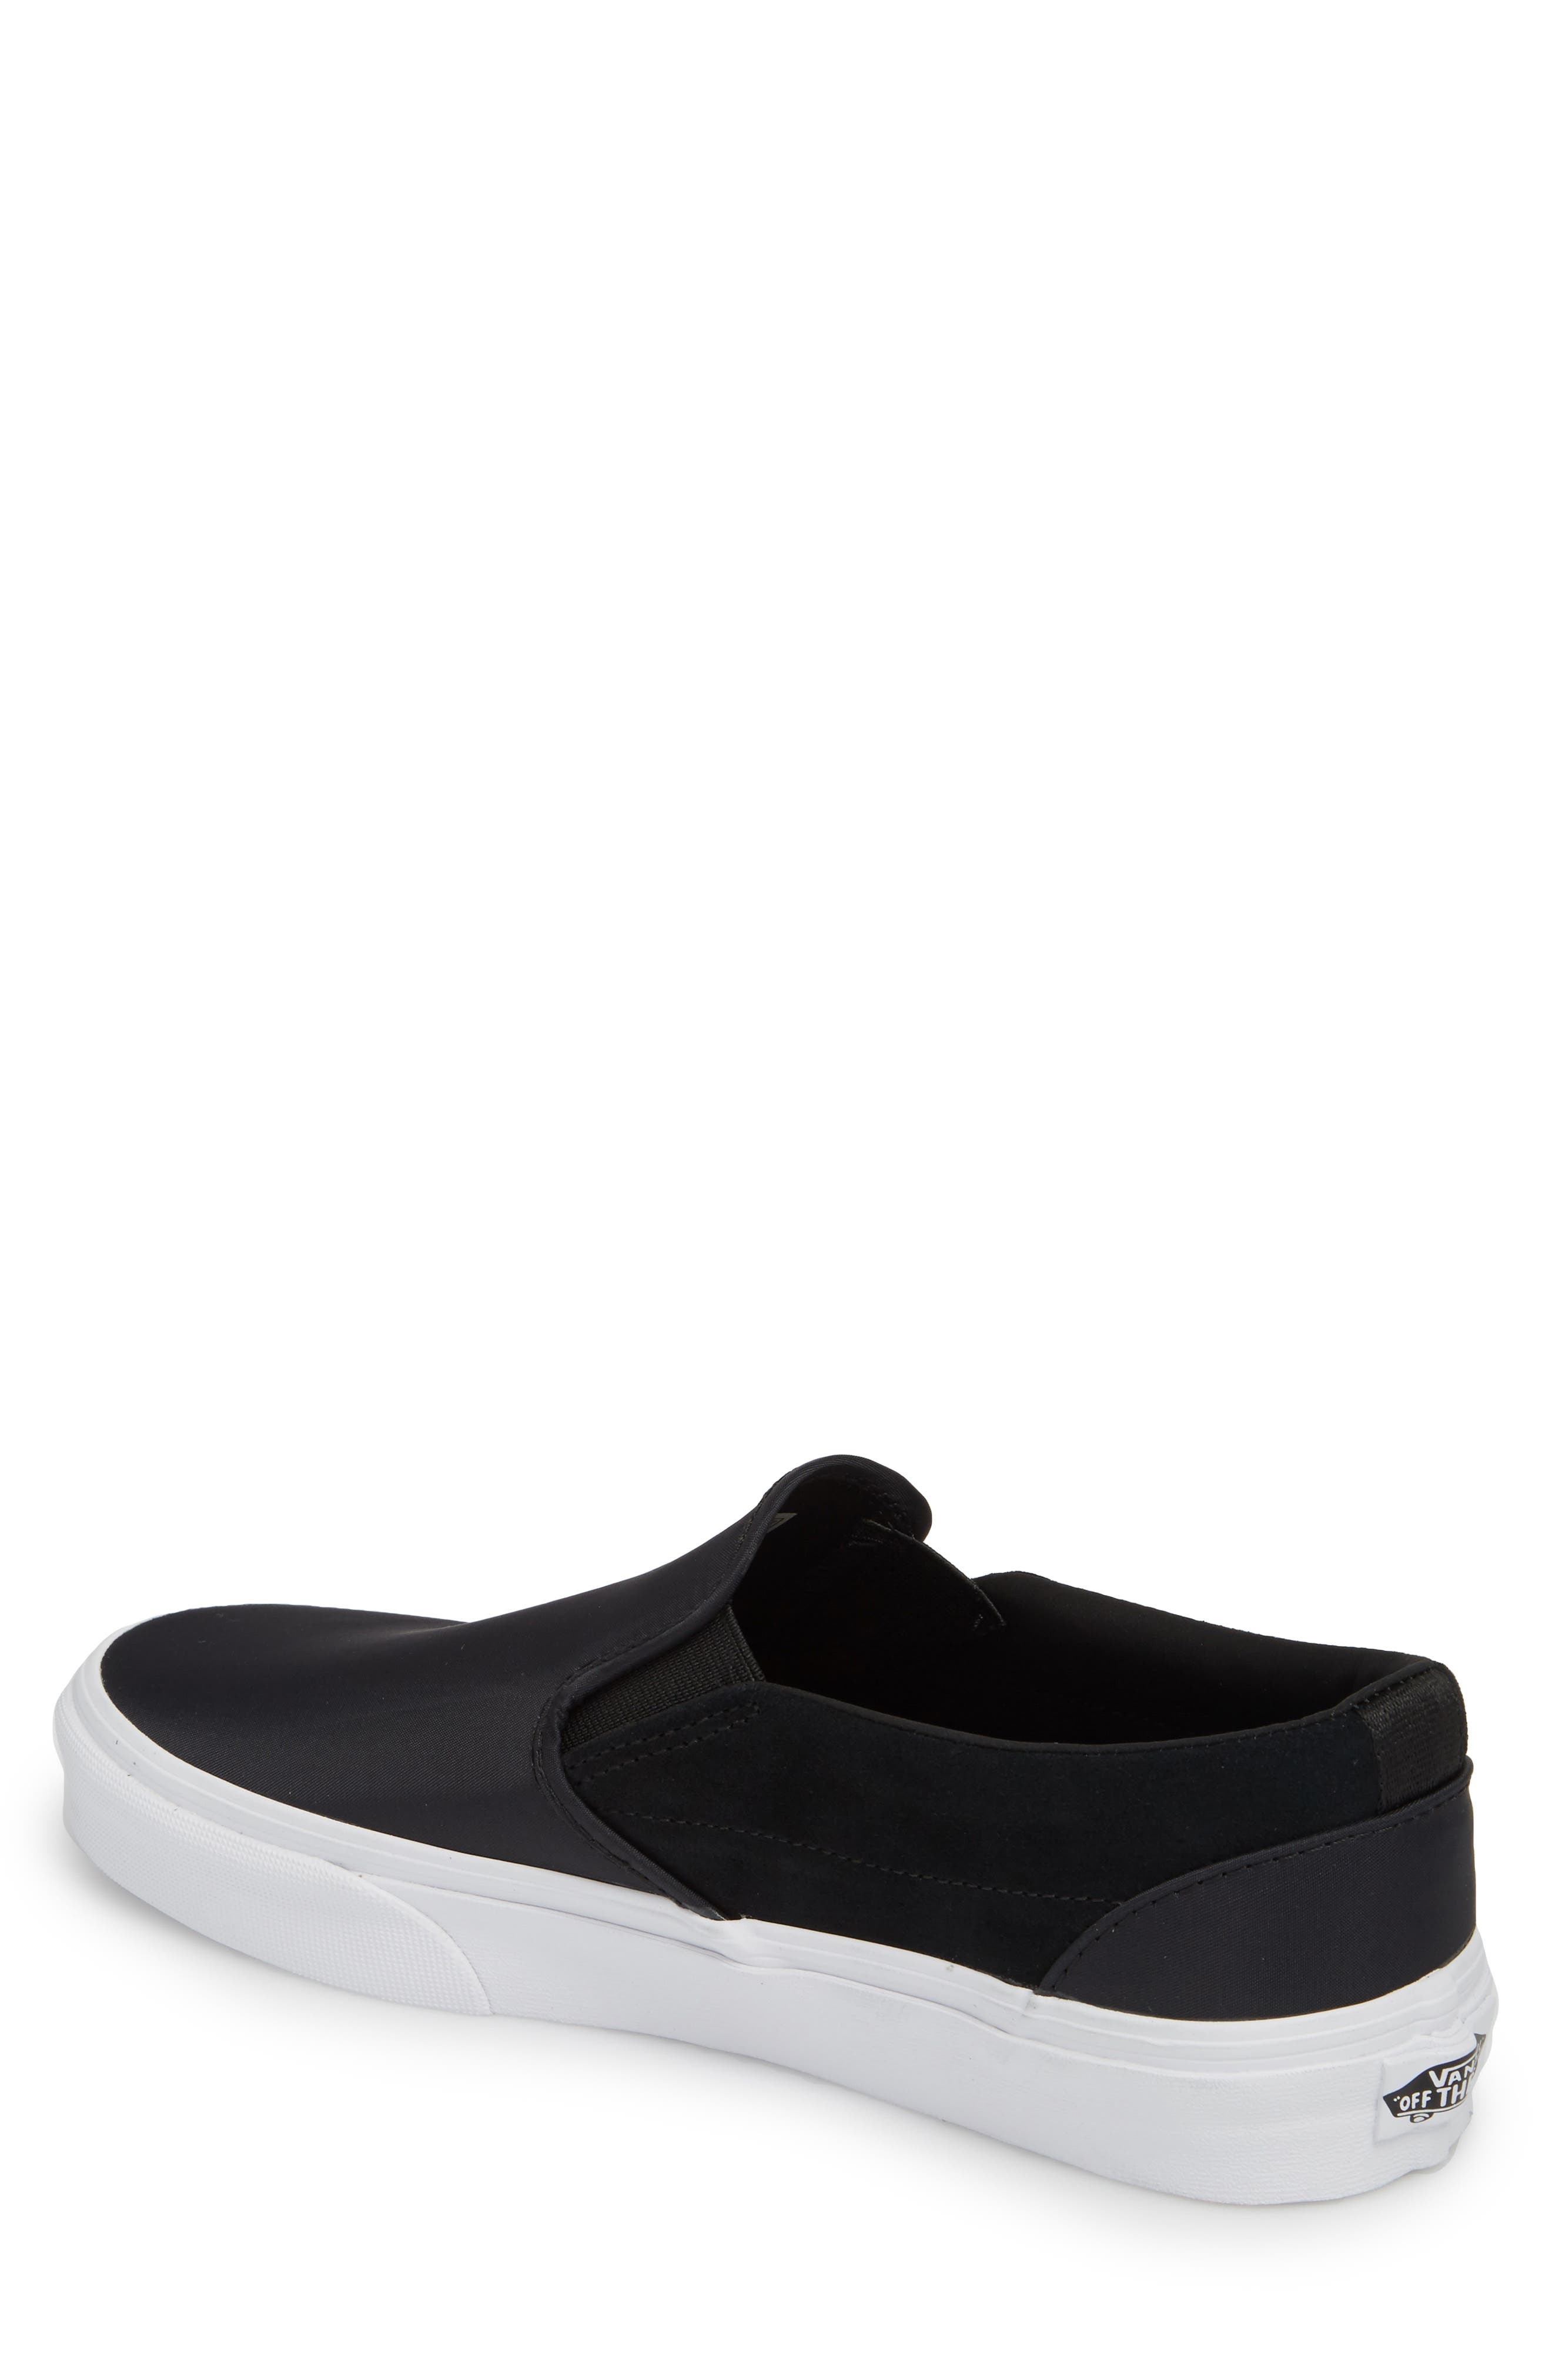 Surplus Nylon Slip-On Sneaker,                             Alternate thumbnail 2, color,                             001